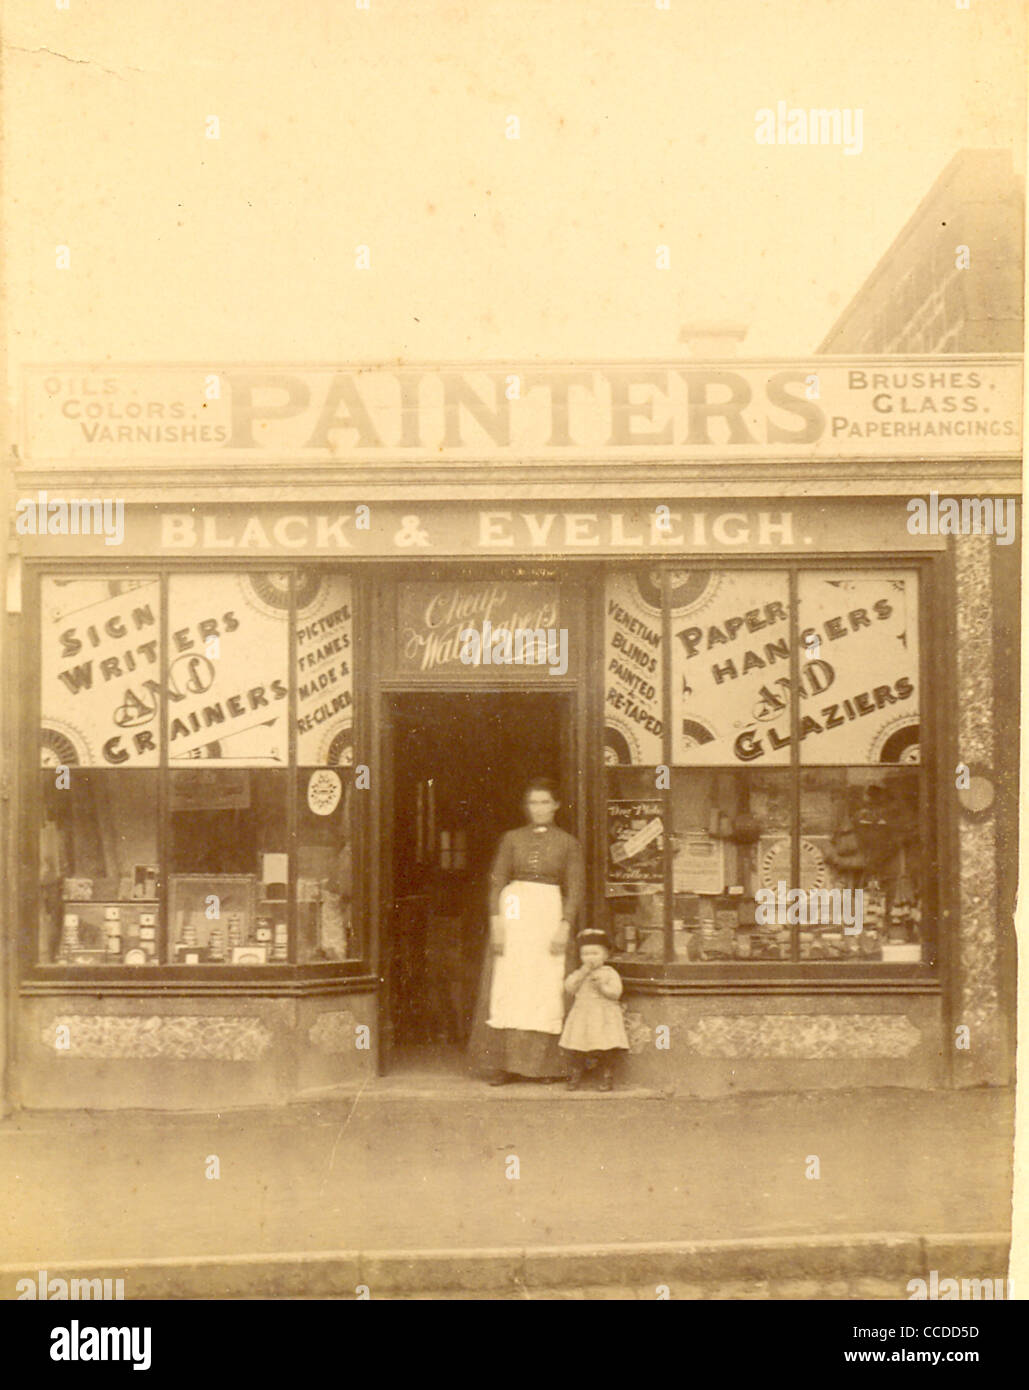 Cabinet photograph of sign writer and painters shop, Black & Eveleigh Stock Photo